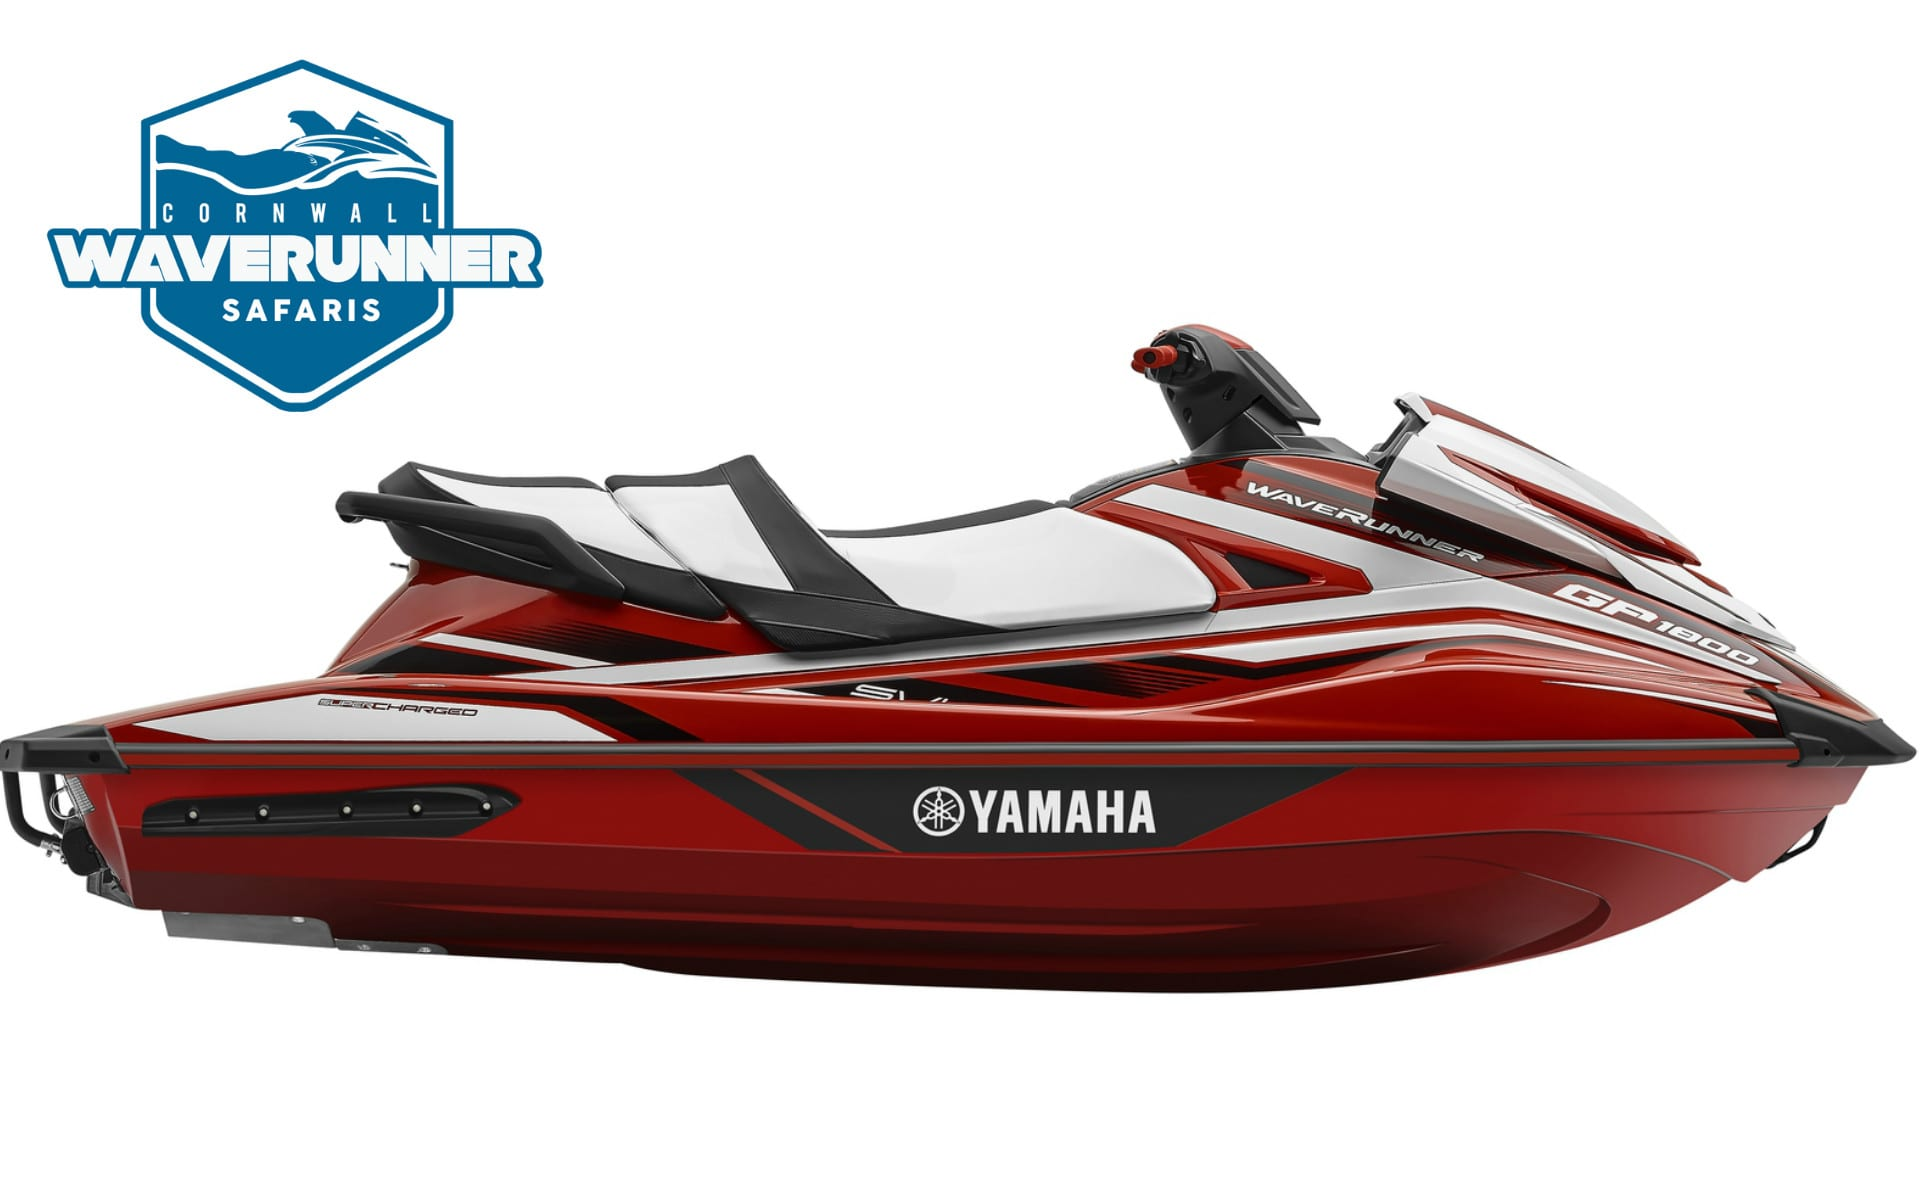 Yamaha Waverunner Price